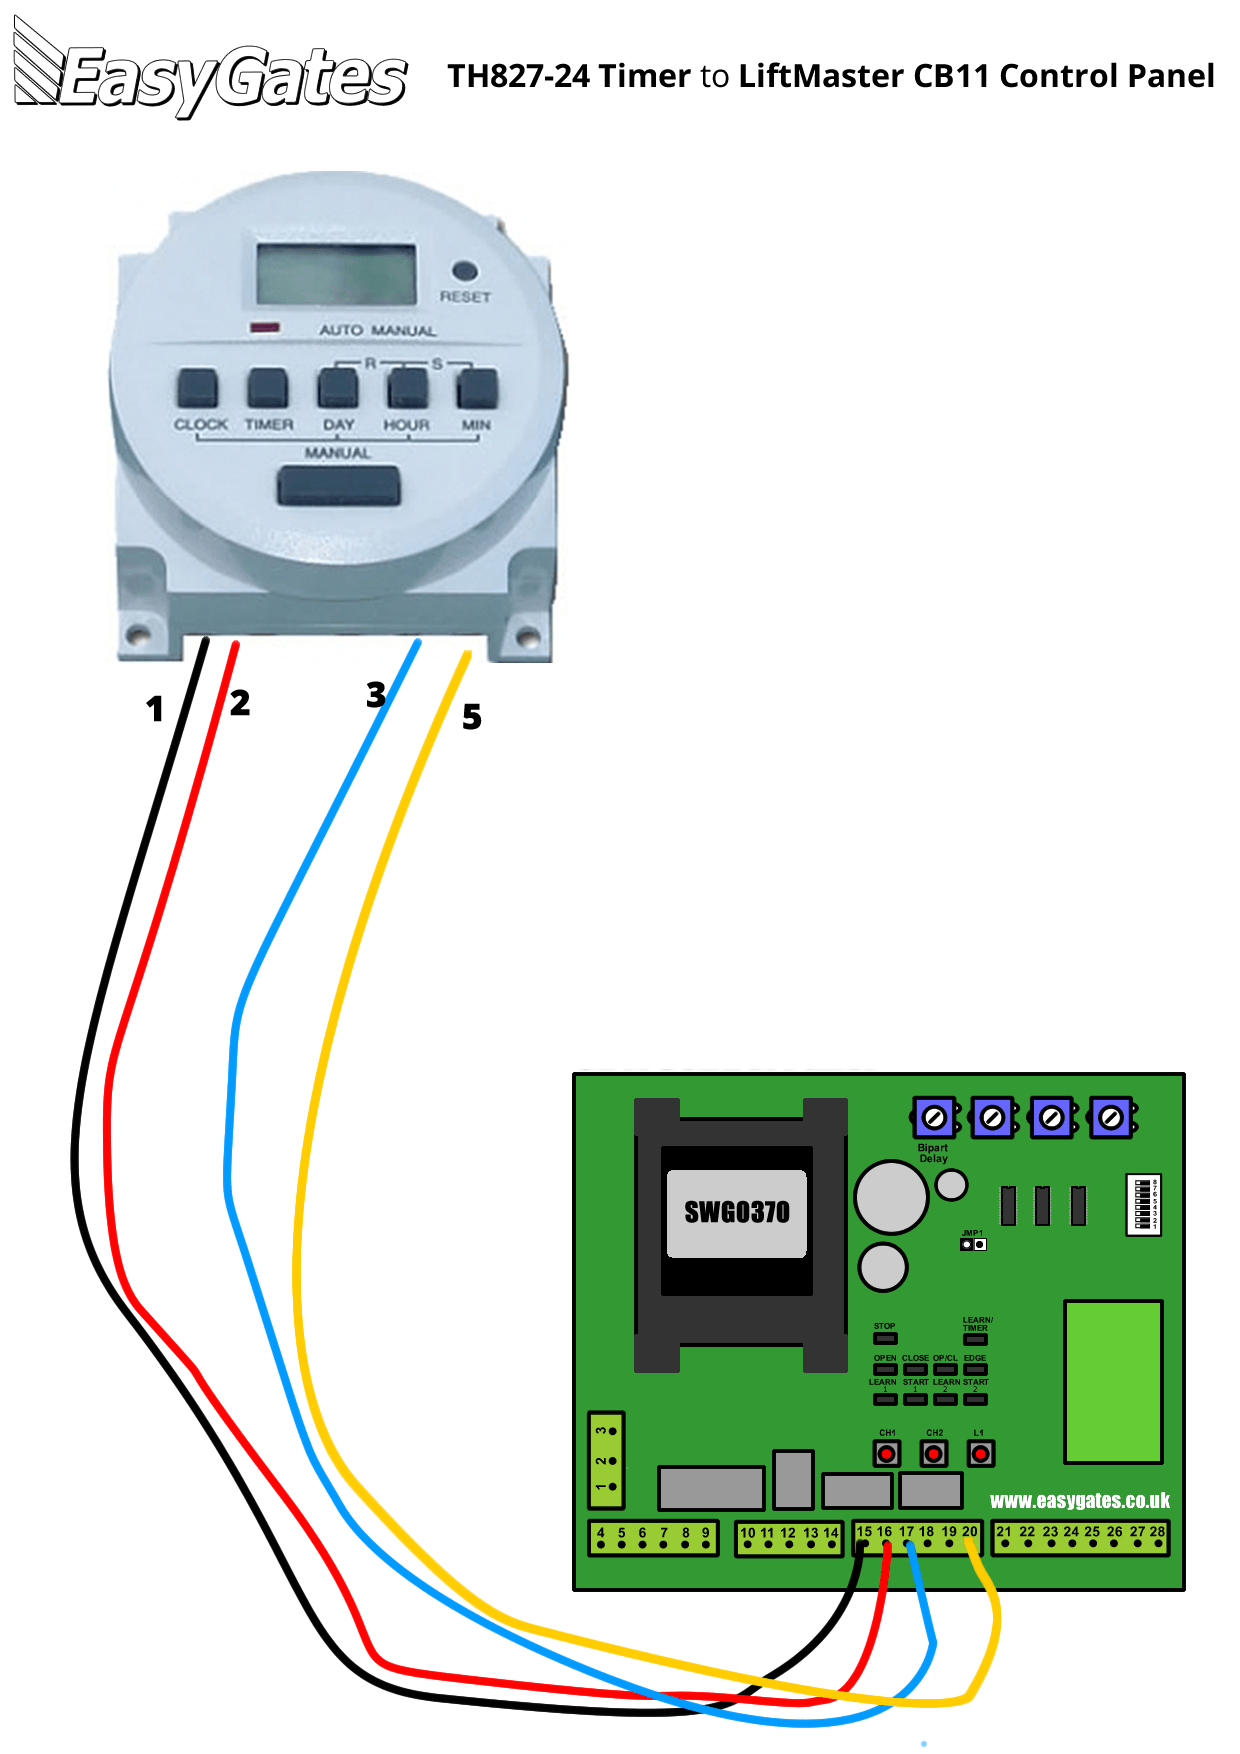 Card Access Wiring Diagram For Connecting Th827 24 Timer To Liftmaster Cb11 Control Panel